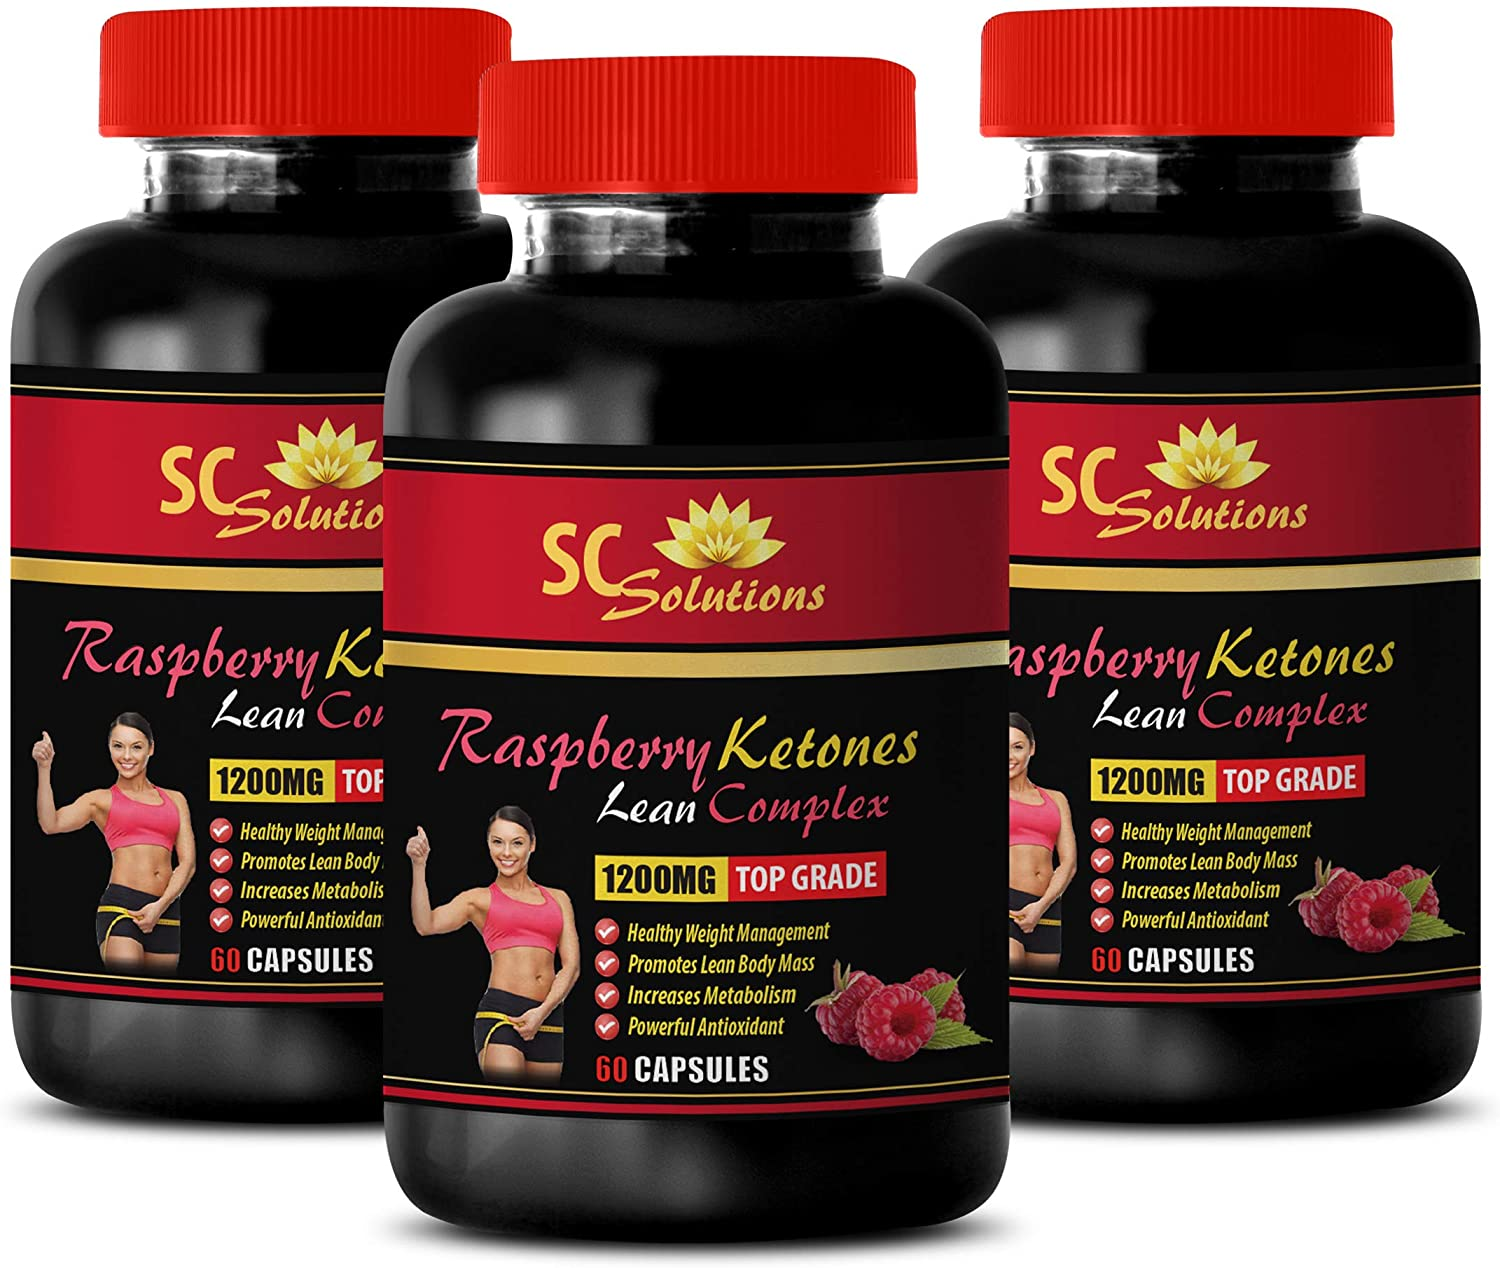 Weight Loss Natural Supplements - Raspberry Ketones Lean Complex 1200MG - TOP Grade - Raspberry Ketone Ultra with African Mango - 3 Bottles (180 Capsules)